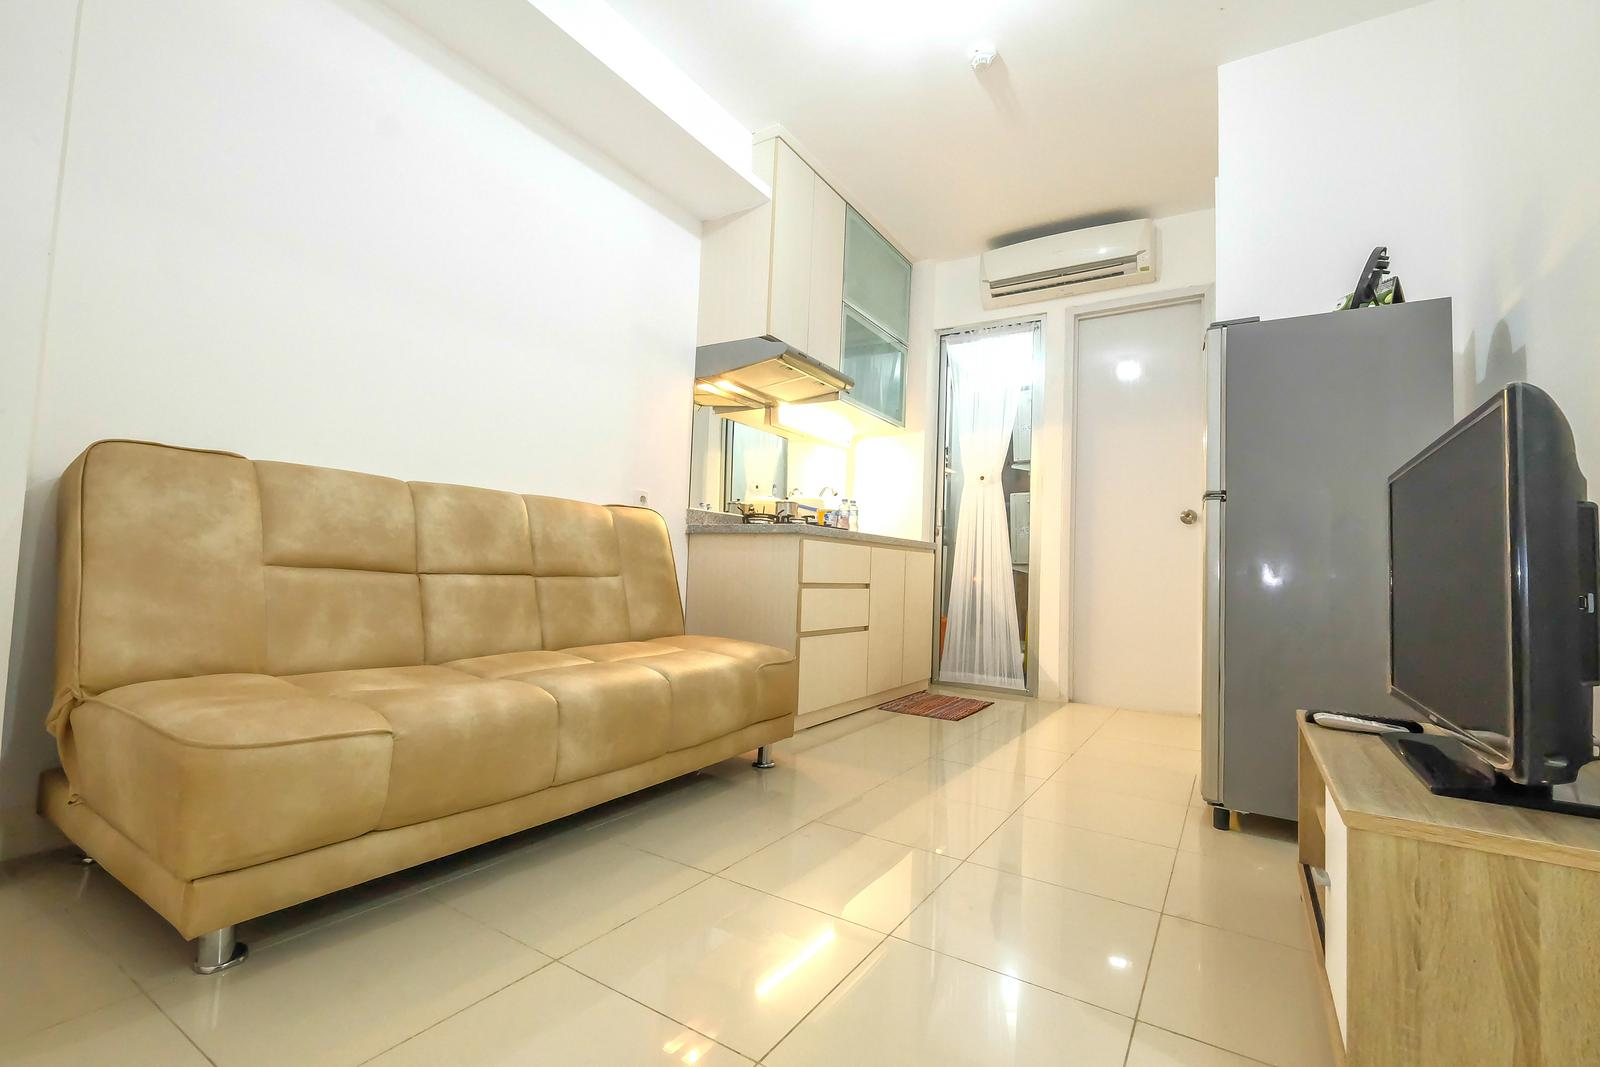 Bassura City Cipinang - Cozy 2 BR Bassura City Apartment By Travelio